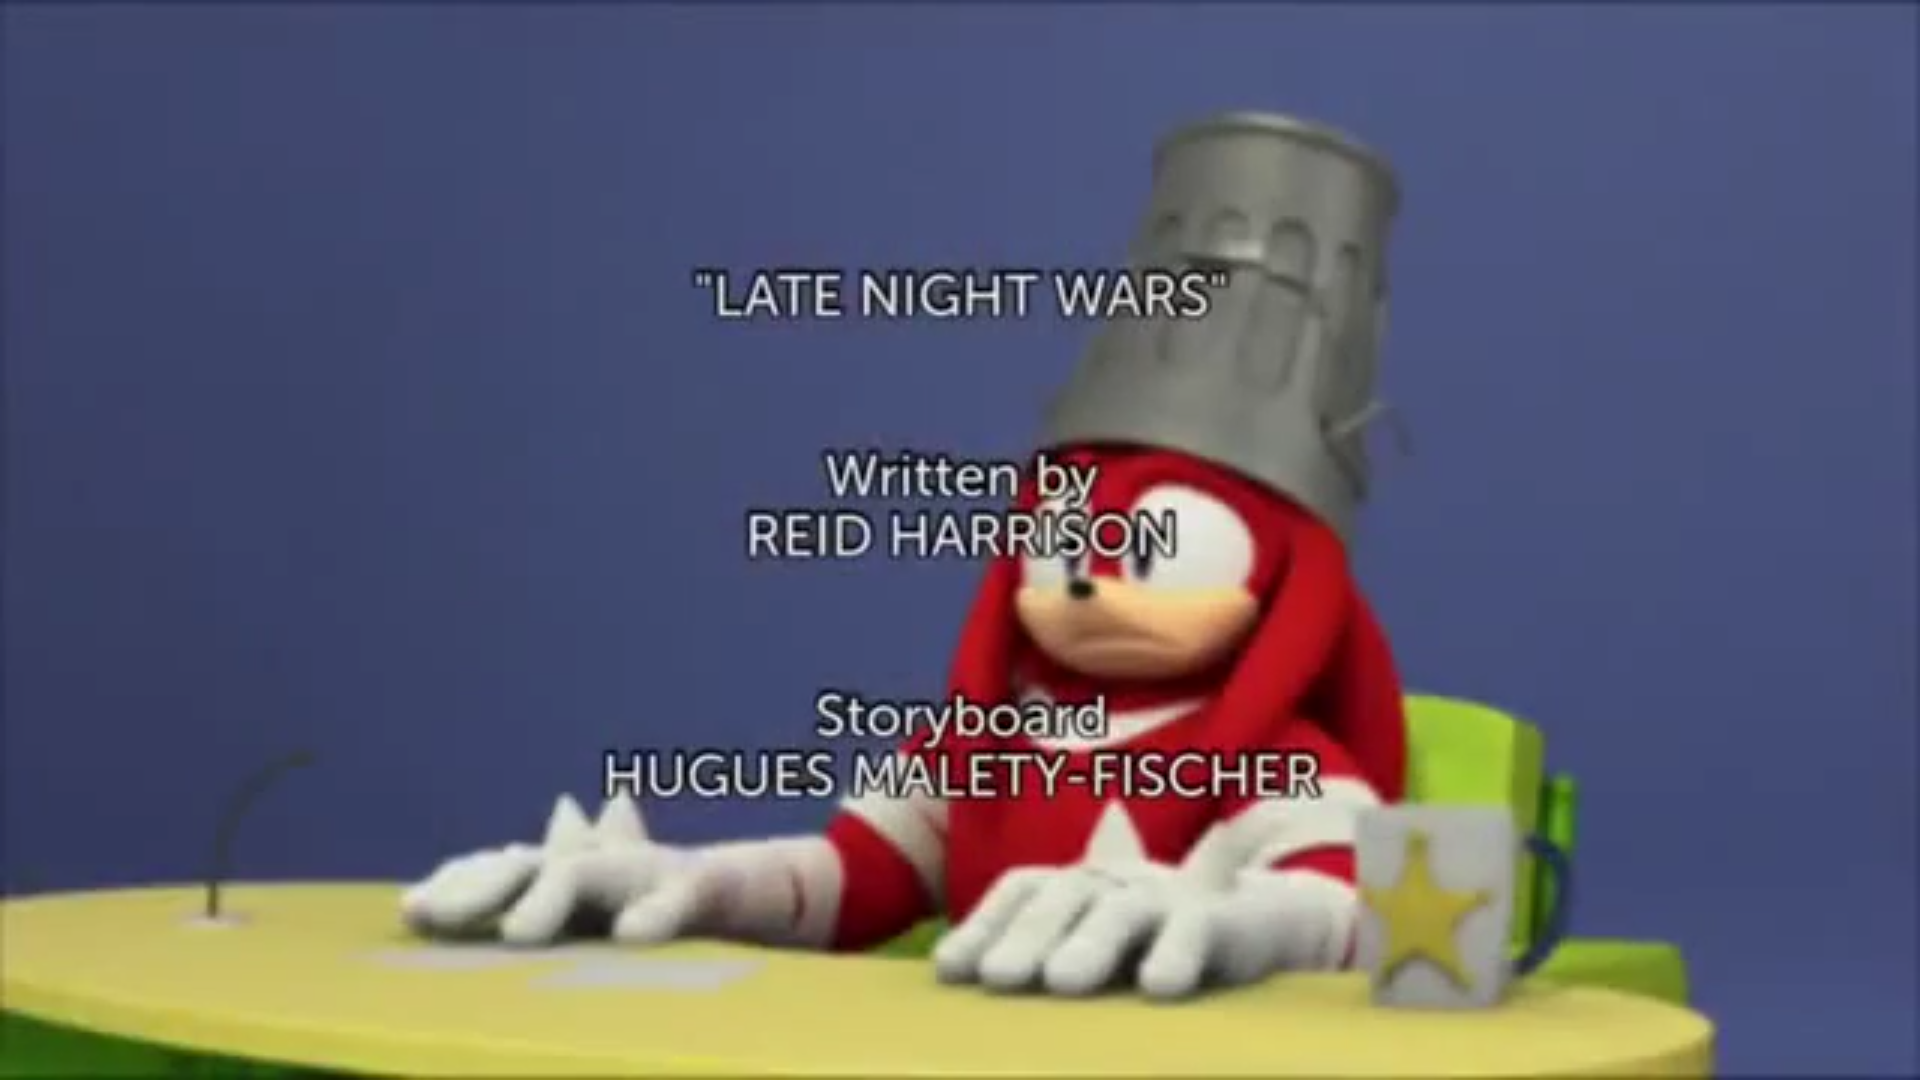 LNW title card